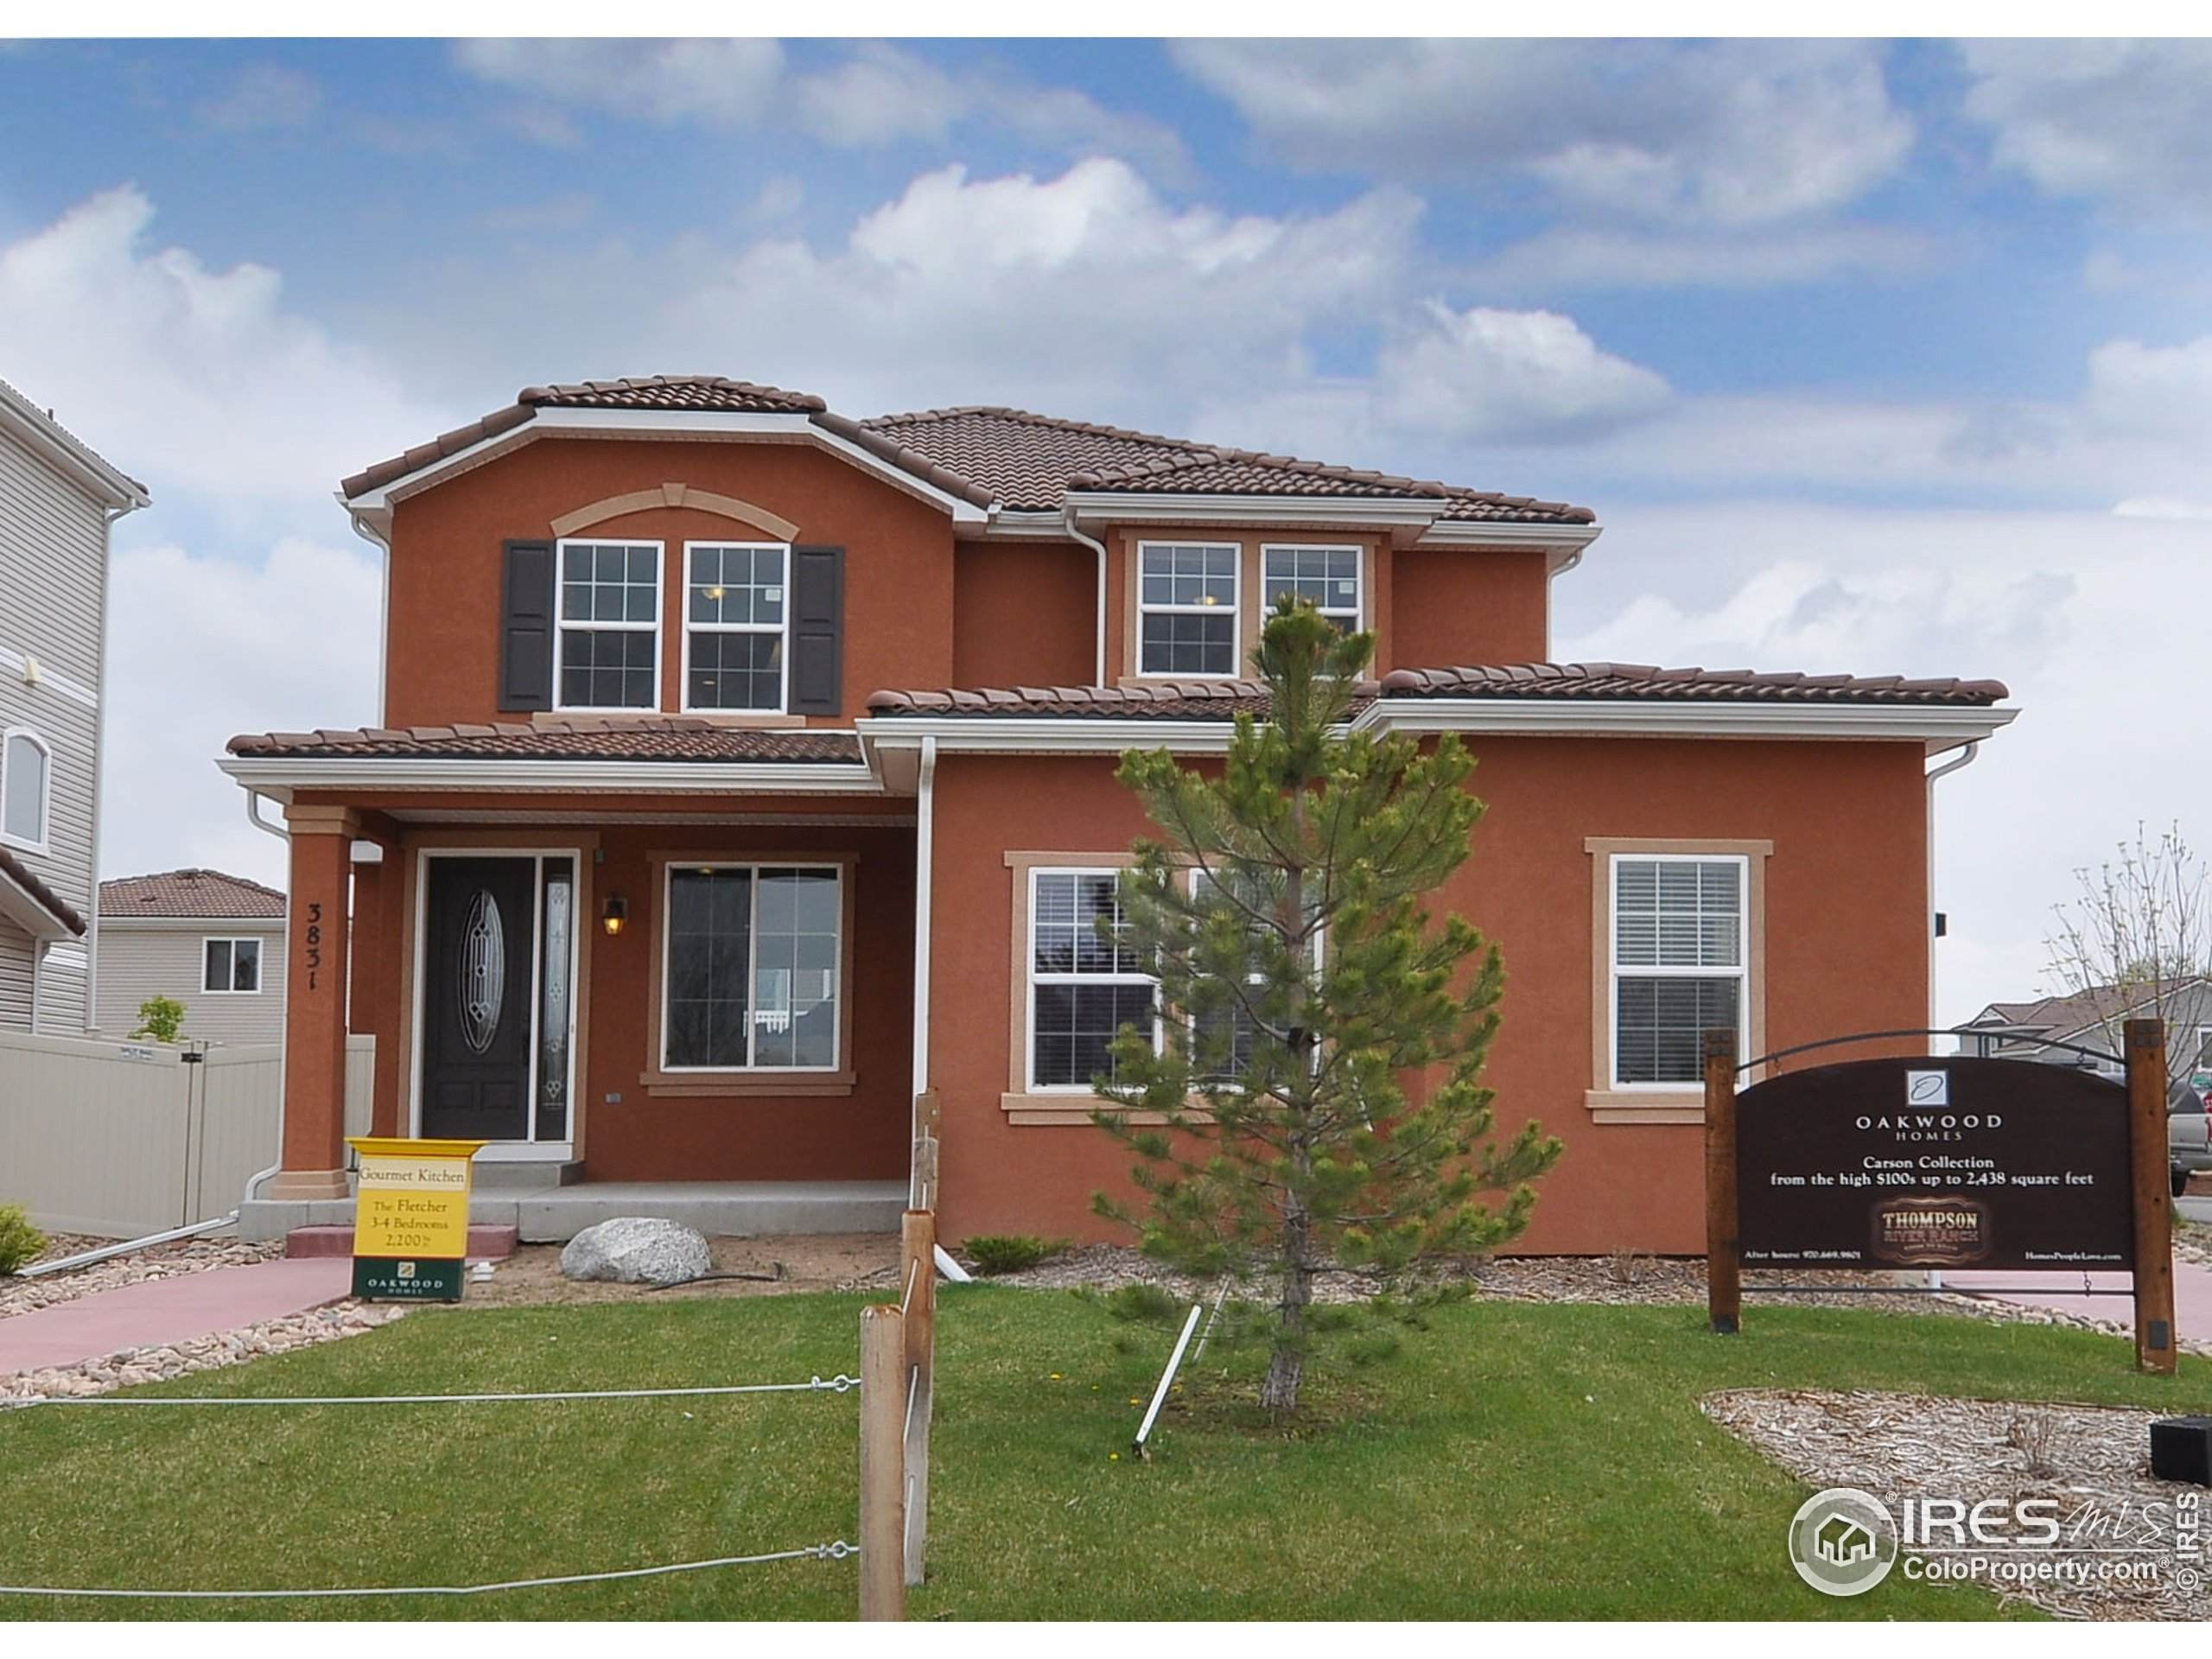 4350 Main St, Timnath, CO 80547 (MLS #929368) :: 8z Real Estate